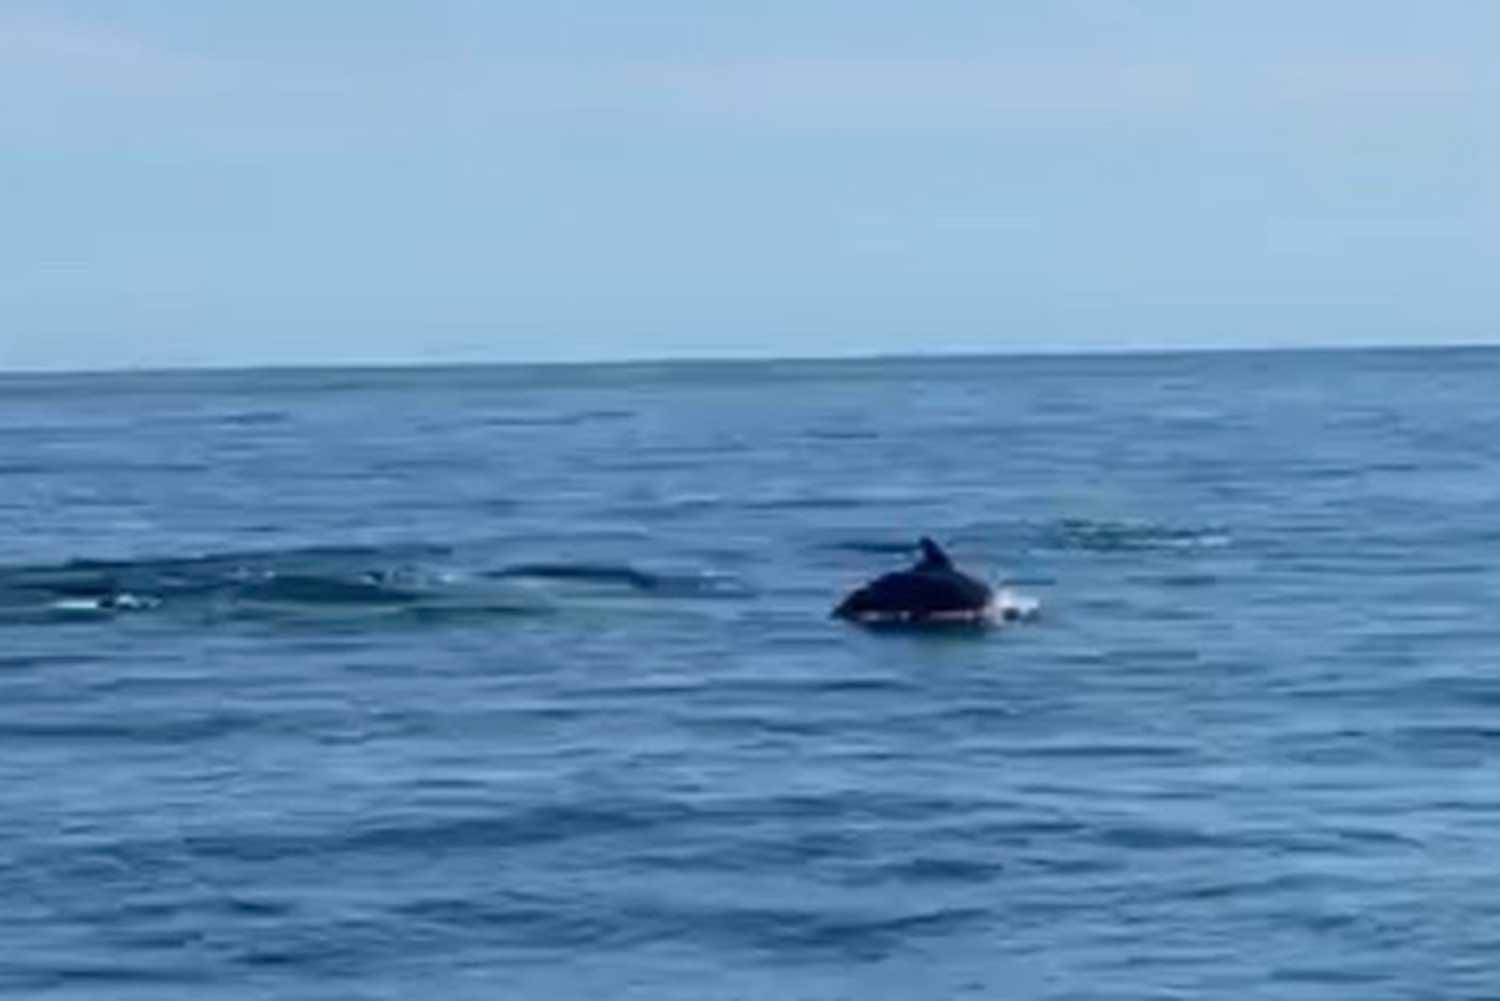 One of the 20 dolphins spotted near Koh Tao breaches the water surface on Saturday. (Photo by Ao Chayachon via Supapong Chaolan)